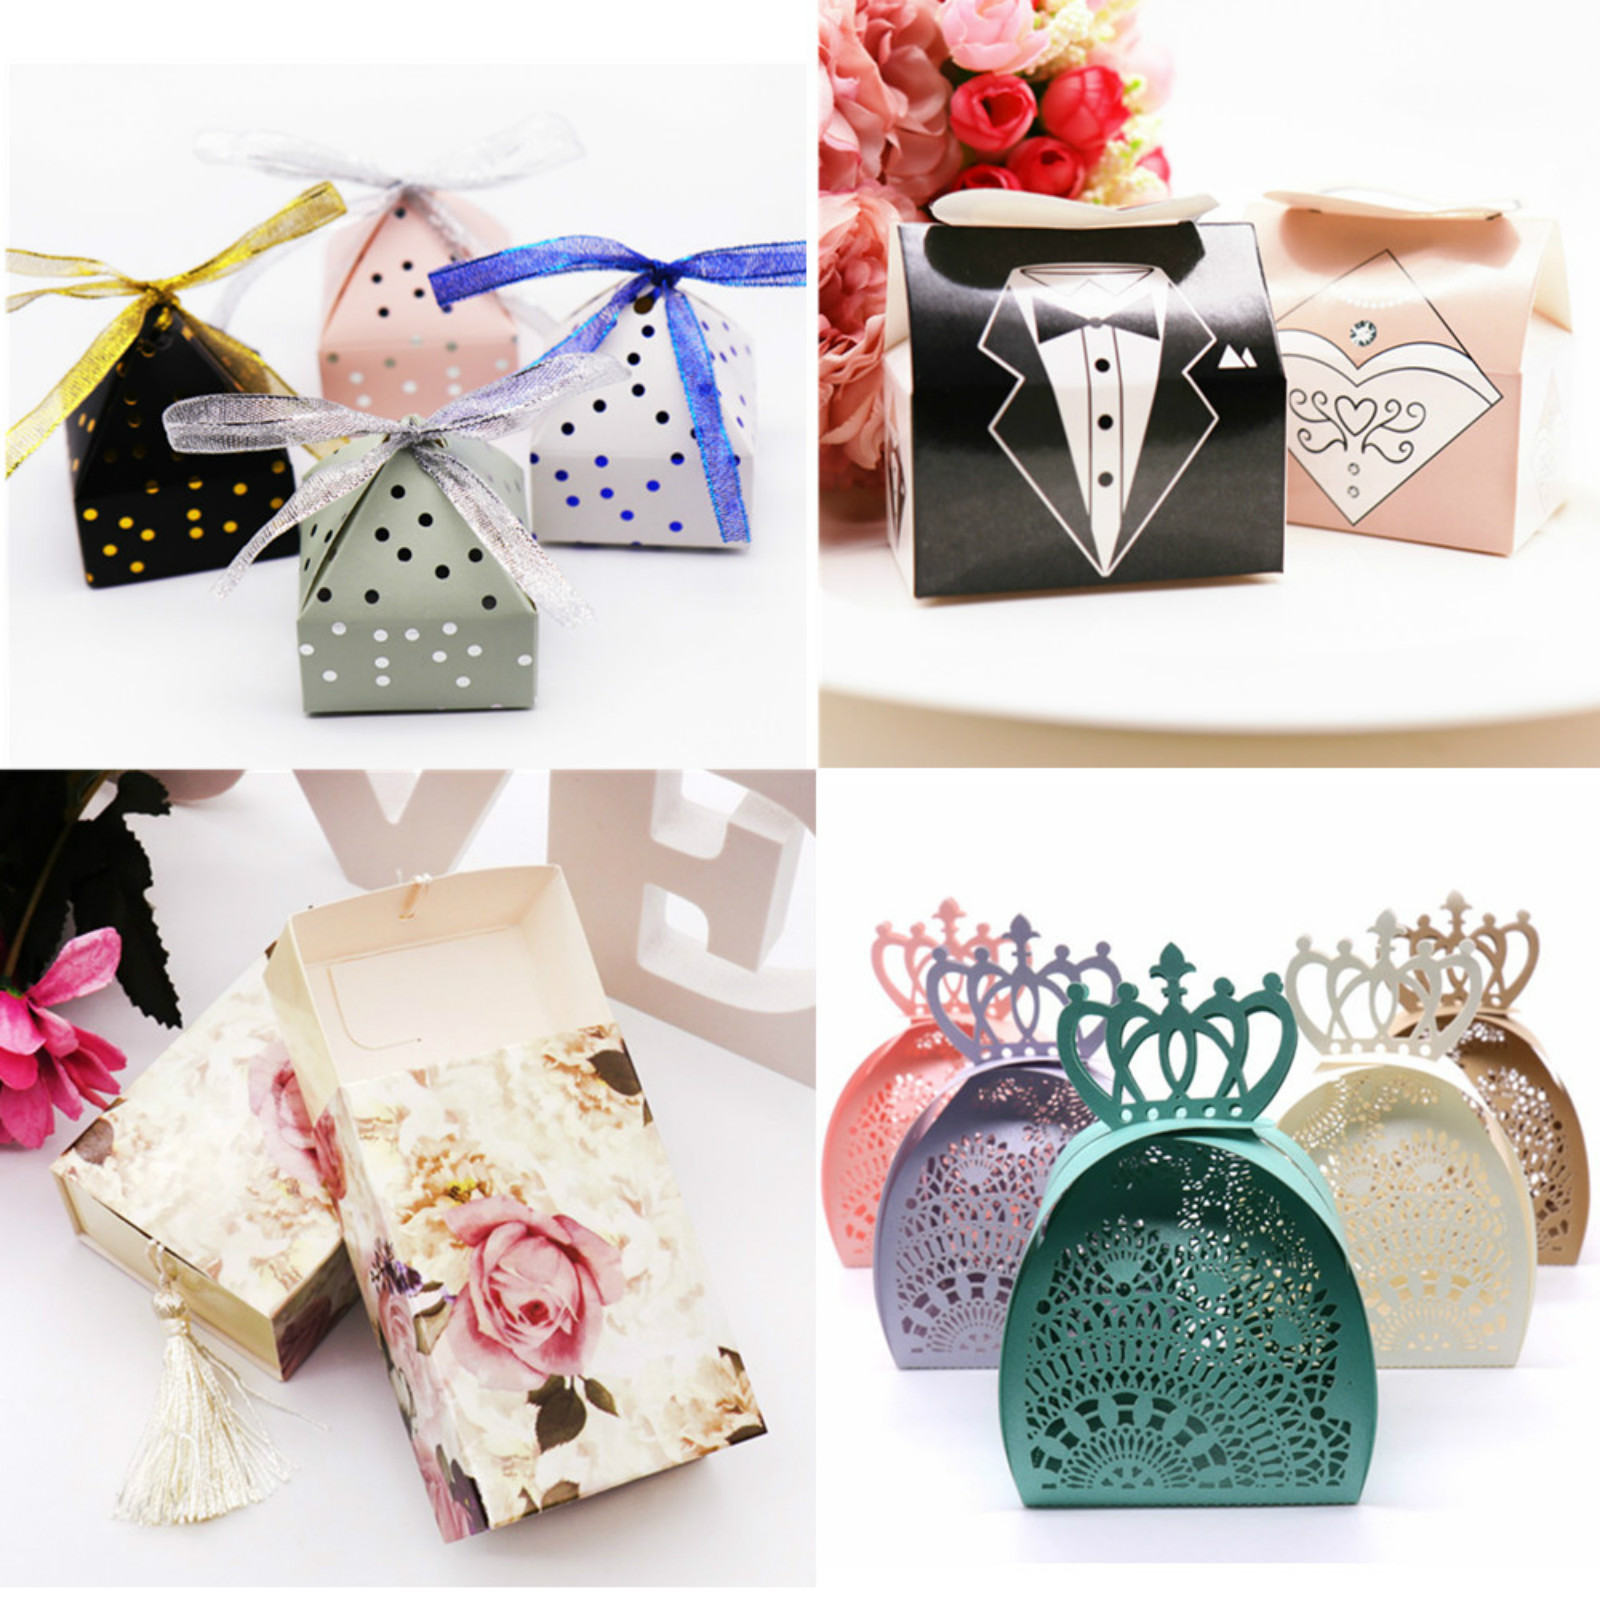 Romantic Groom Bride Love Chocolate Box Wedding Party Decoration Favor Hollow Butterfly Paper Candy Box Tassel Flower Gift Boxes